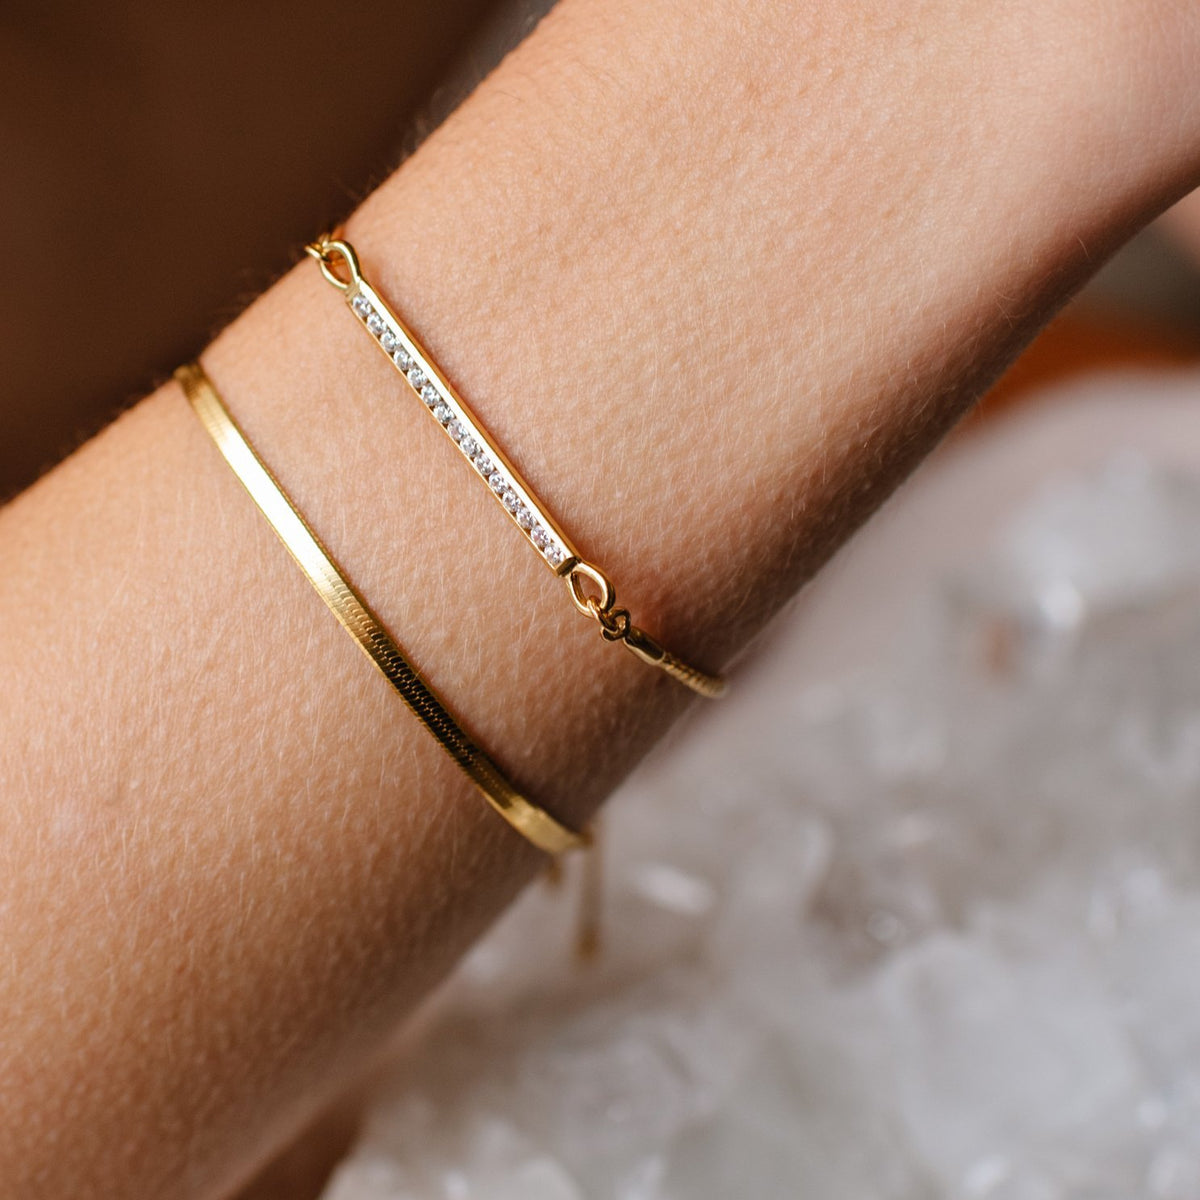 DREAM STARDUST ADJUSTABLE BRACELET - CUBIC ZIRCONIA & GOLD - SO PRETTY CARA COTTER